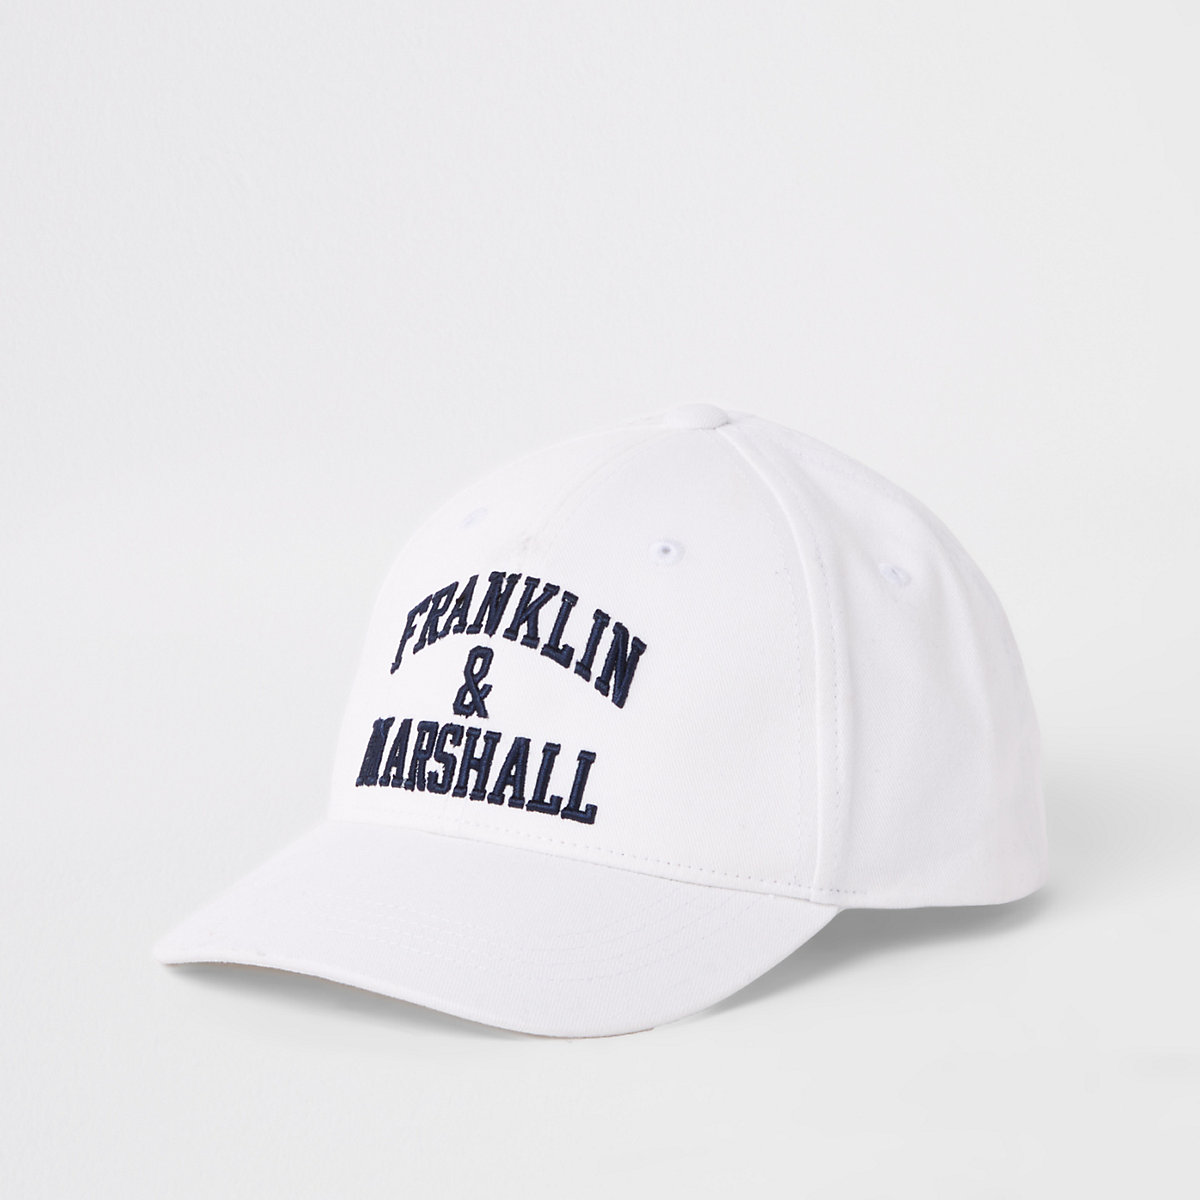 Boys Franklin and Marshall white cap